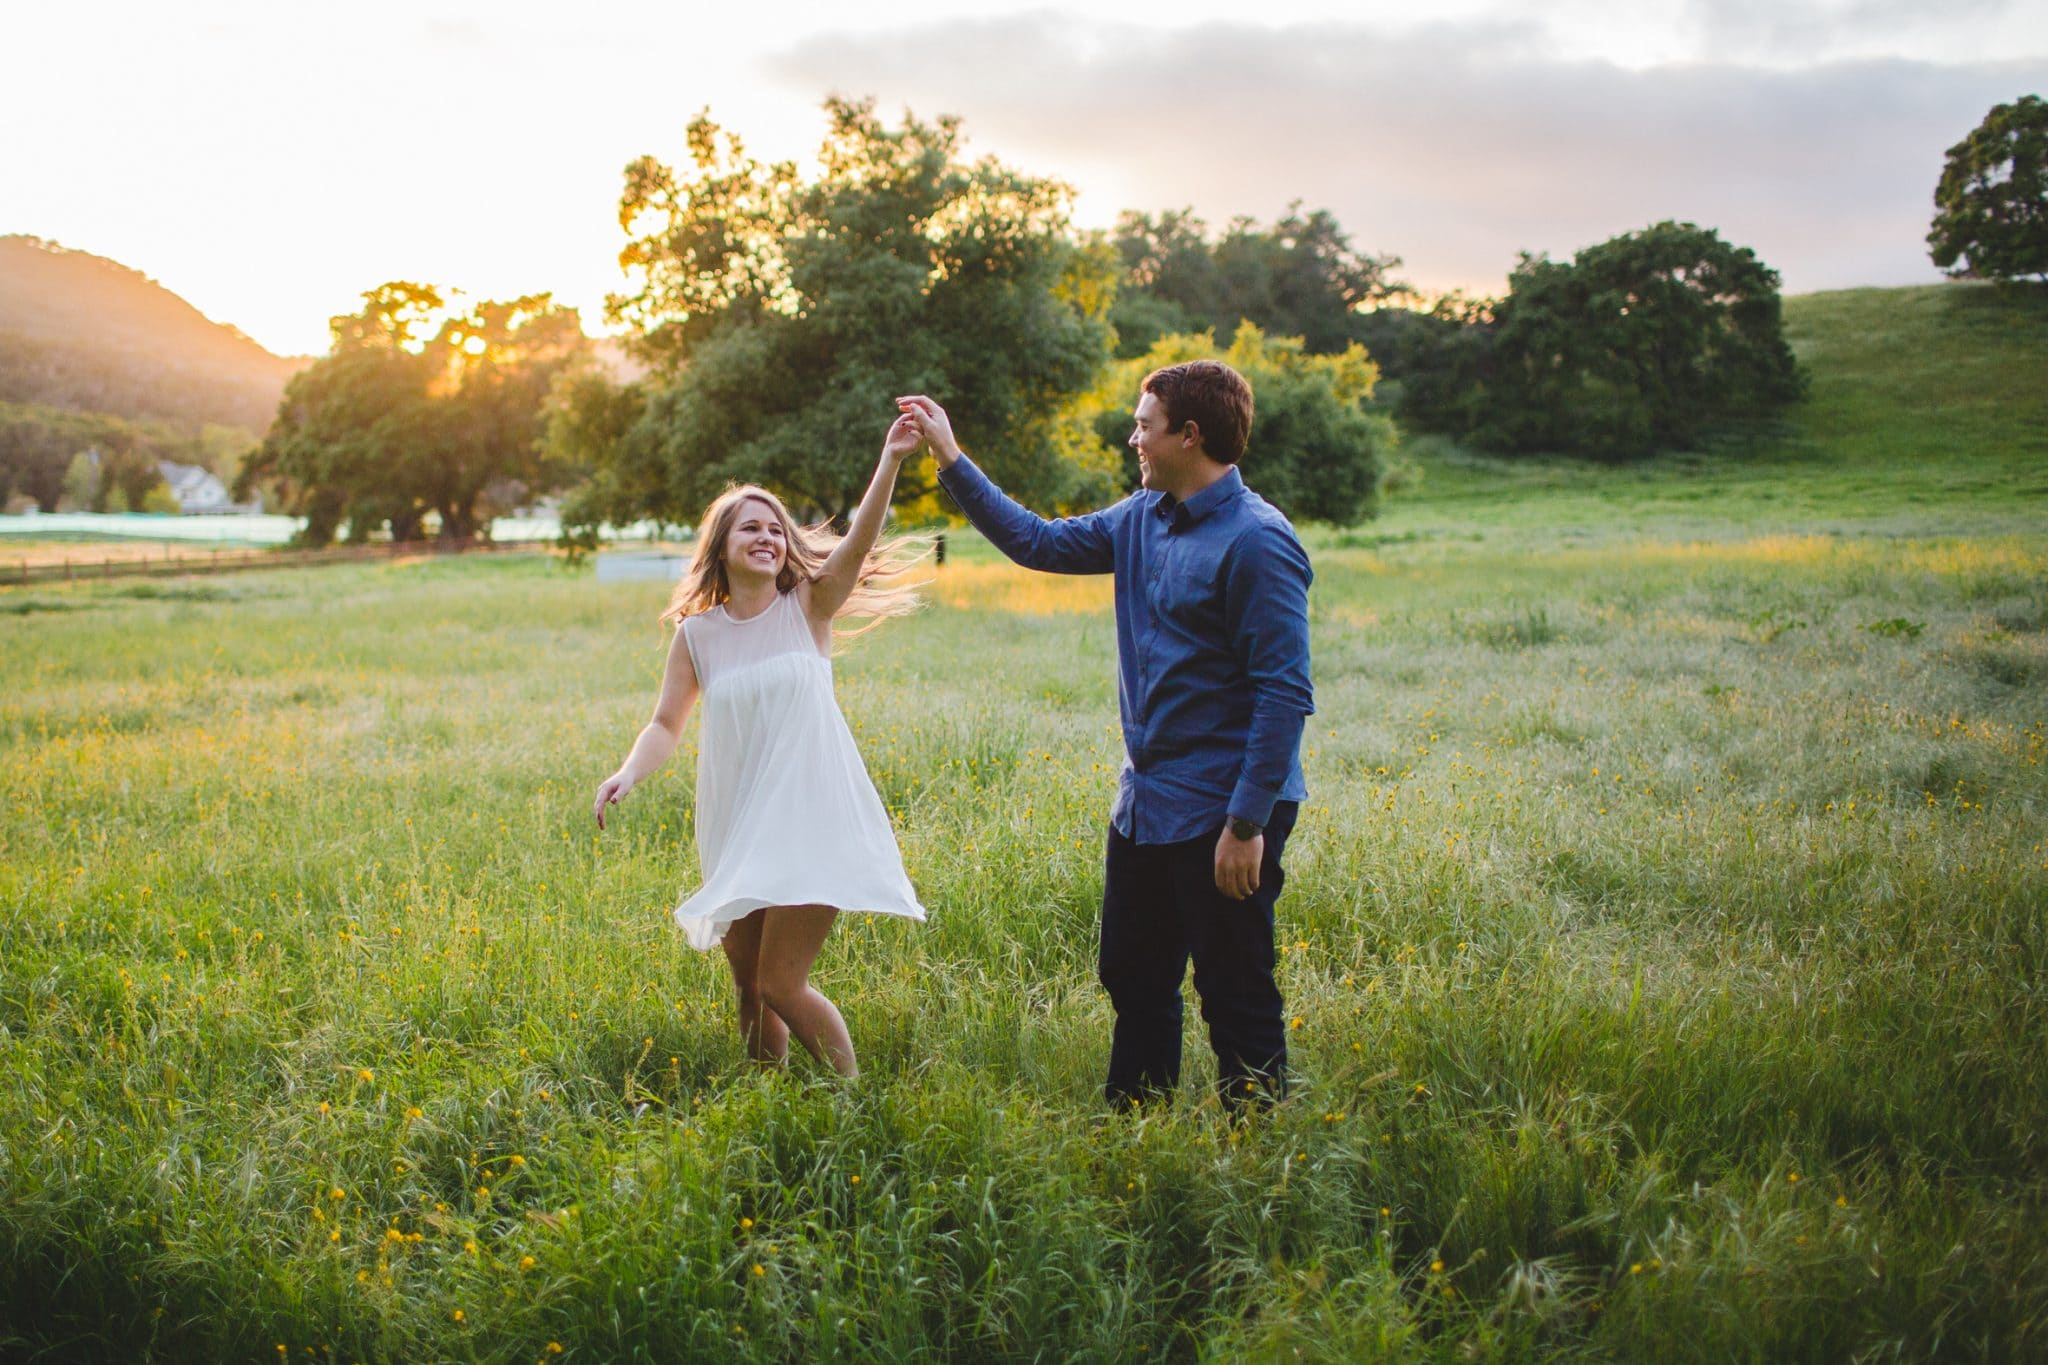 dancing in the field engagement shoot